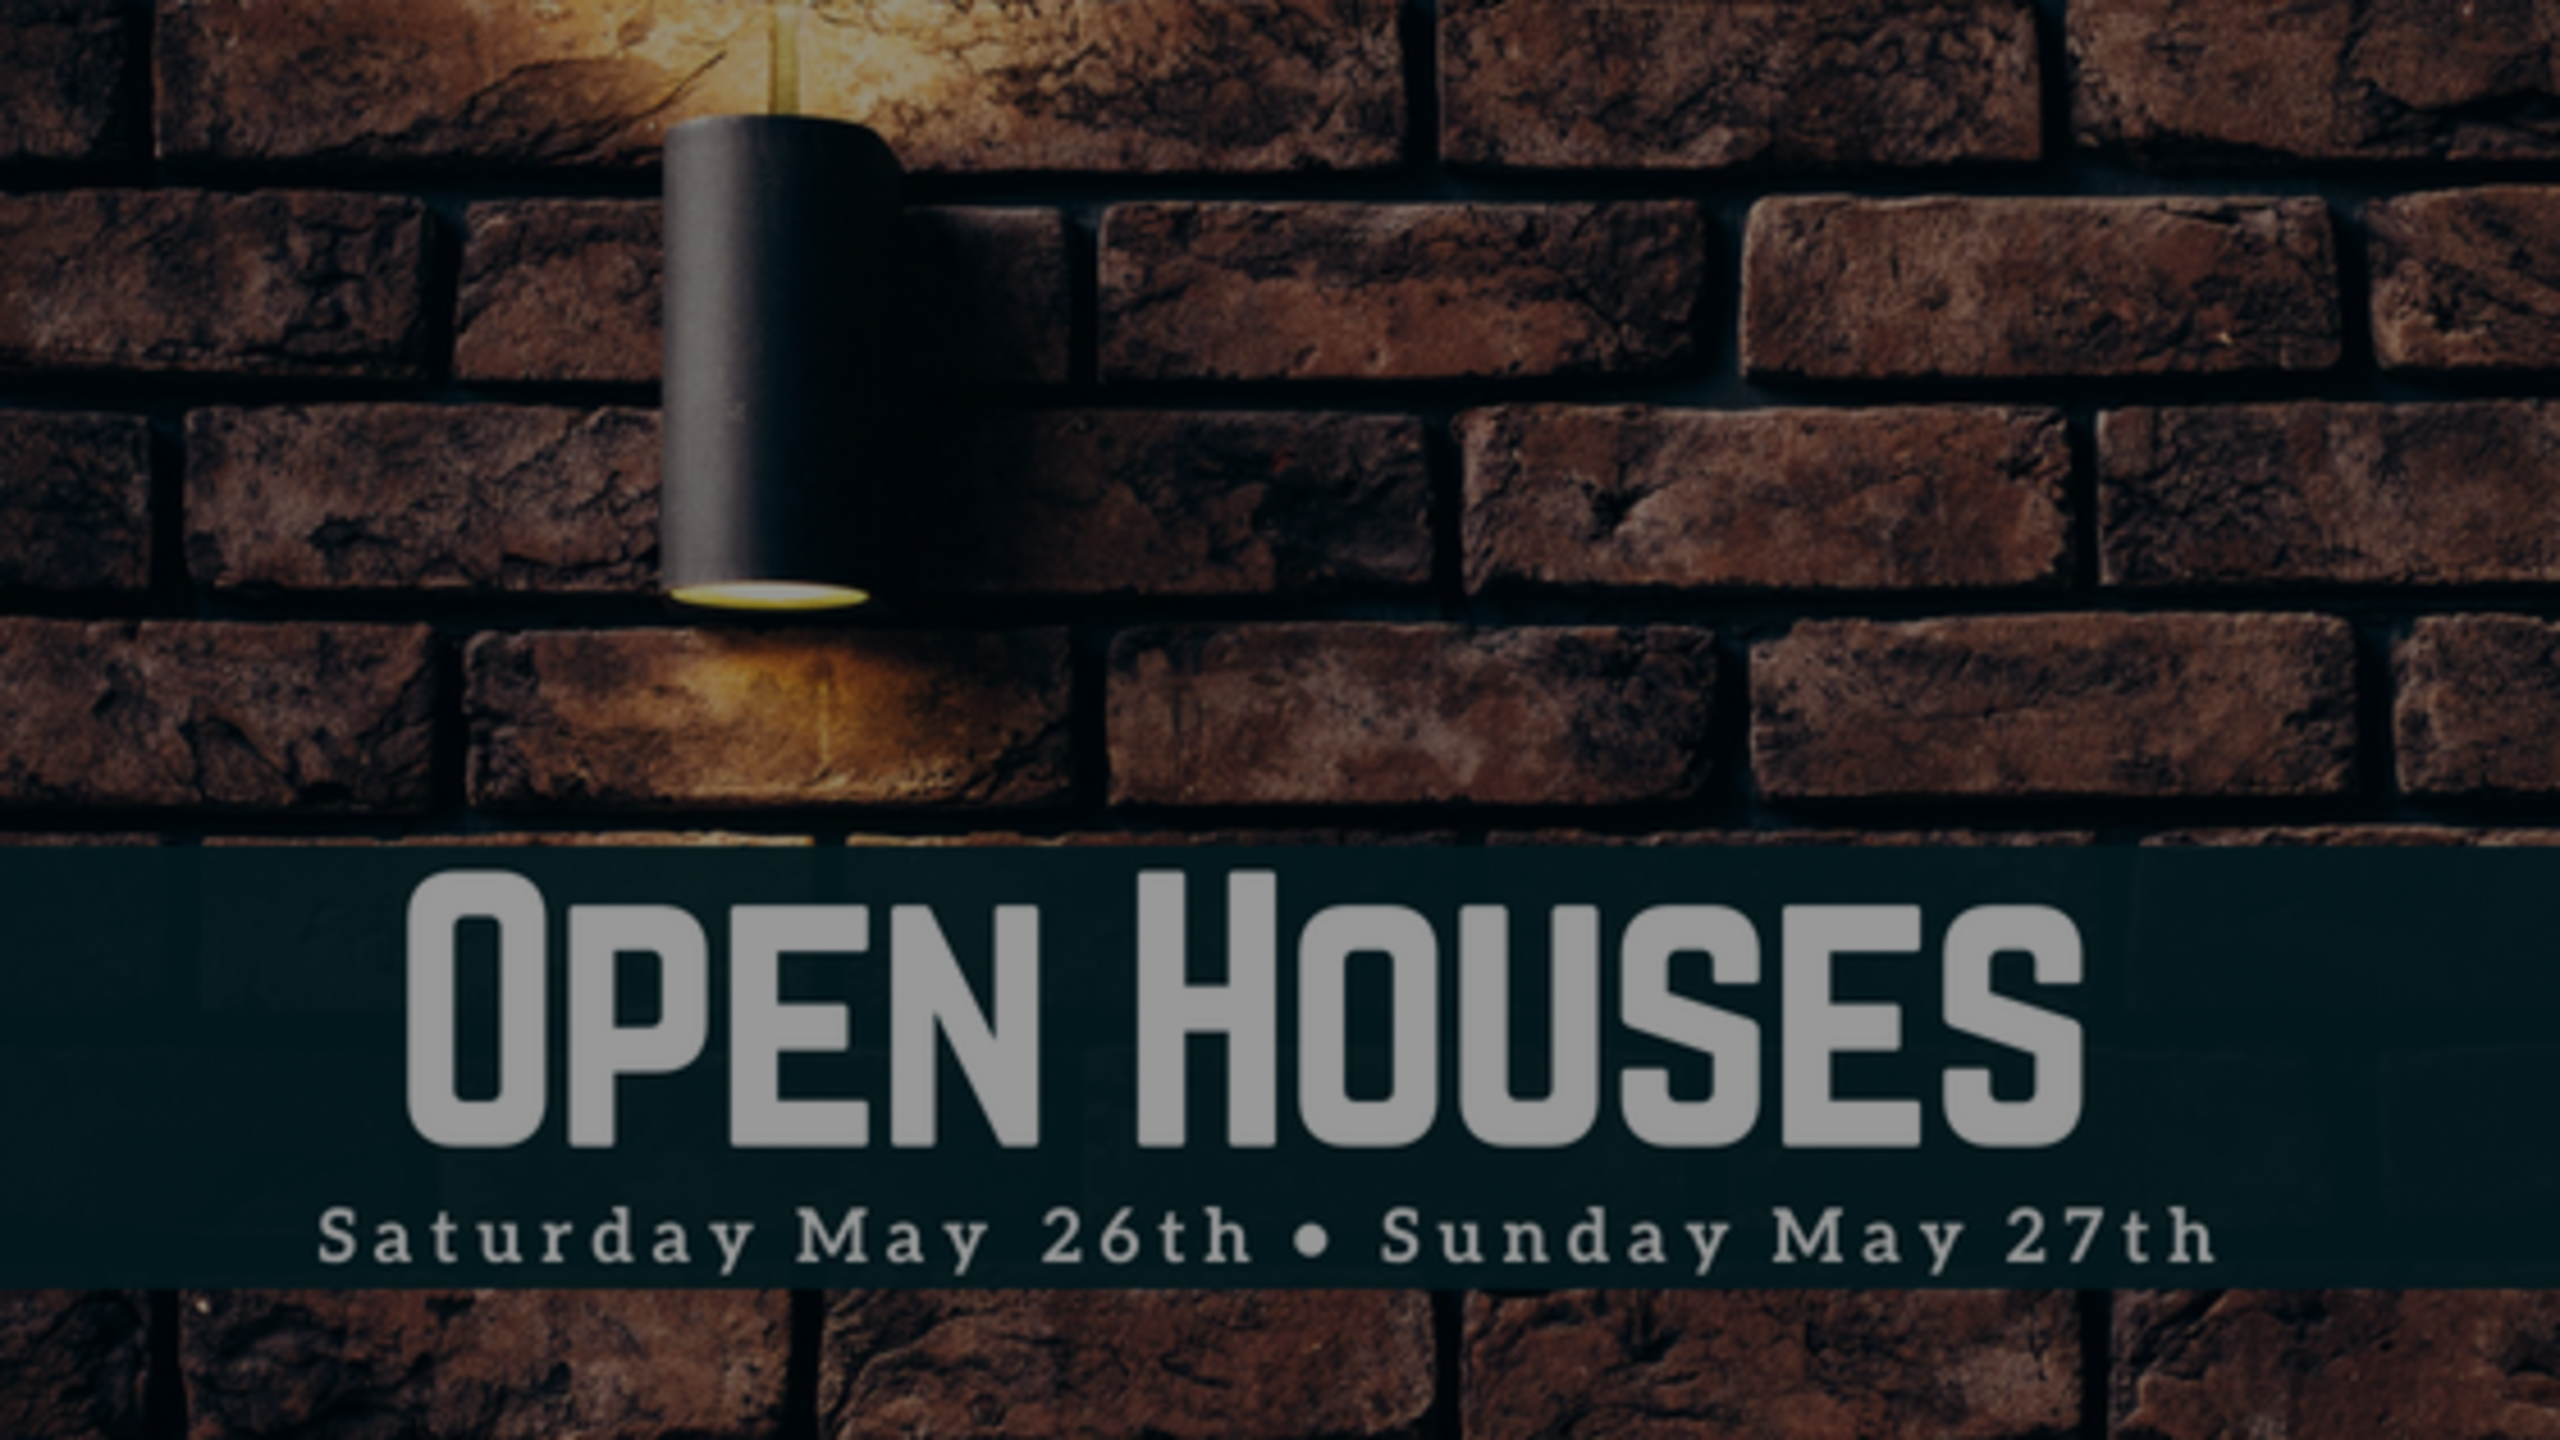 Our Open Houses: Weekend of 5/26 + 5/27